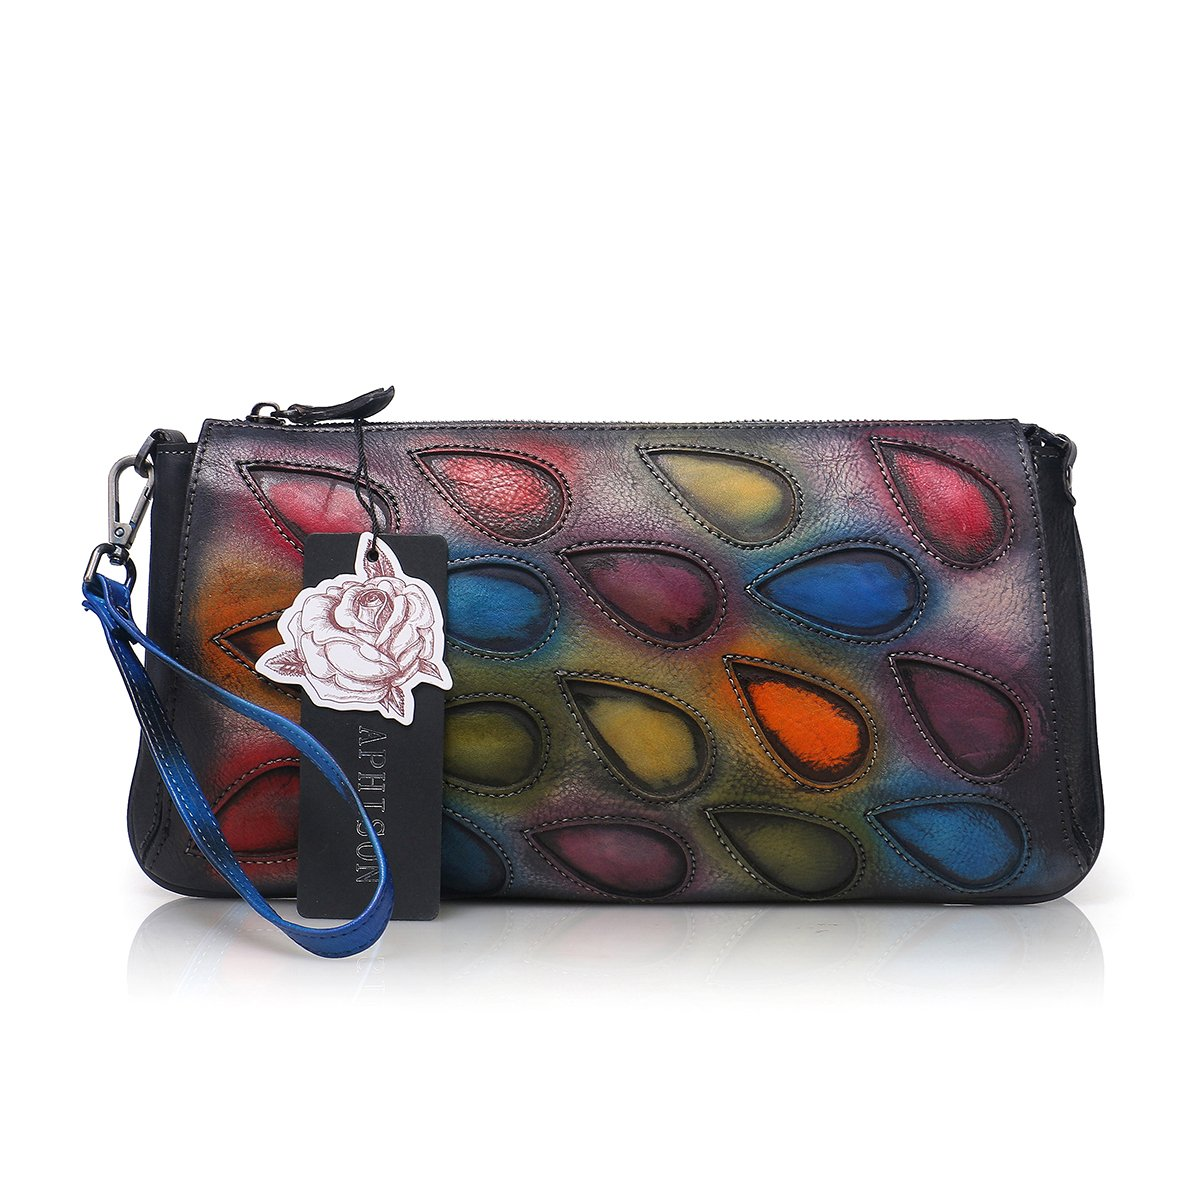 APHISON Peacock Feathers Clutch Purse Women's Leather Long Style Wristlets Wallets (Colorful)